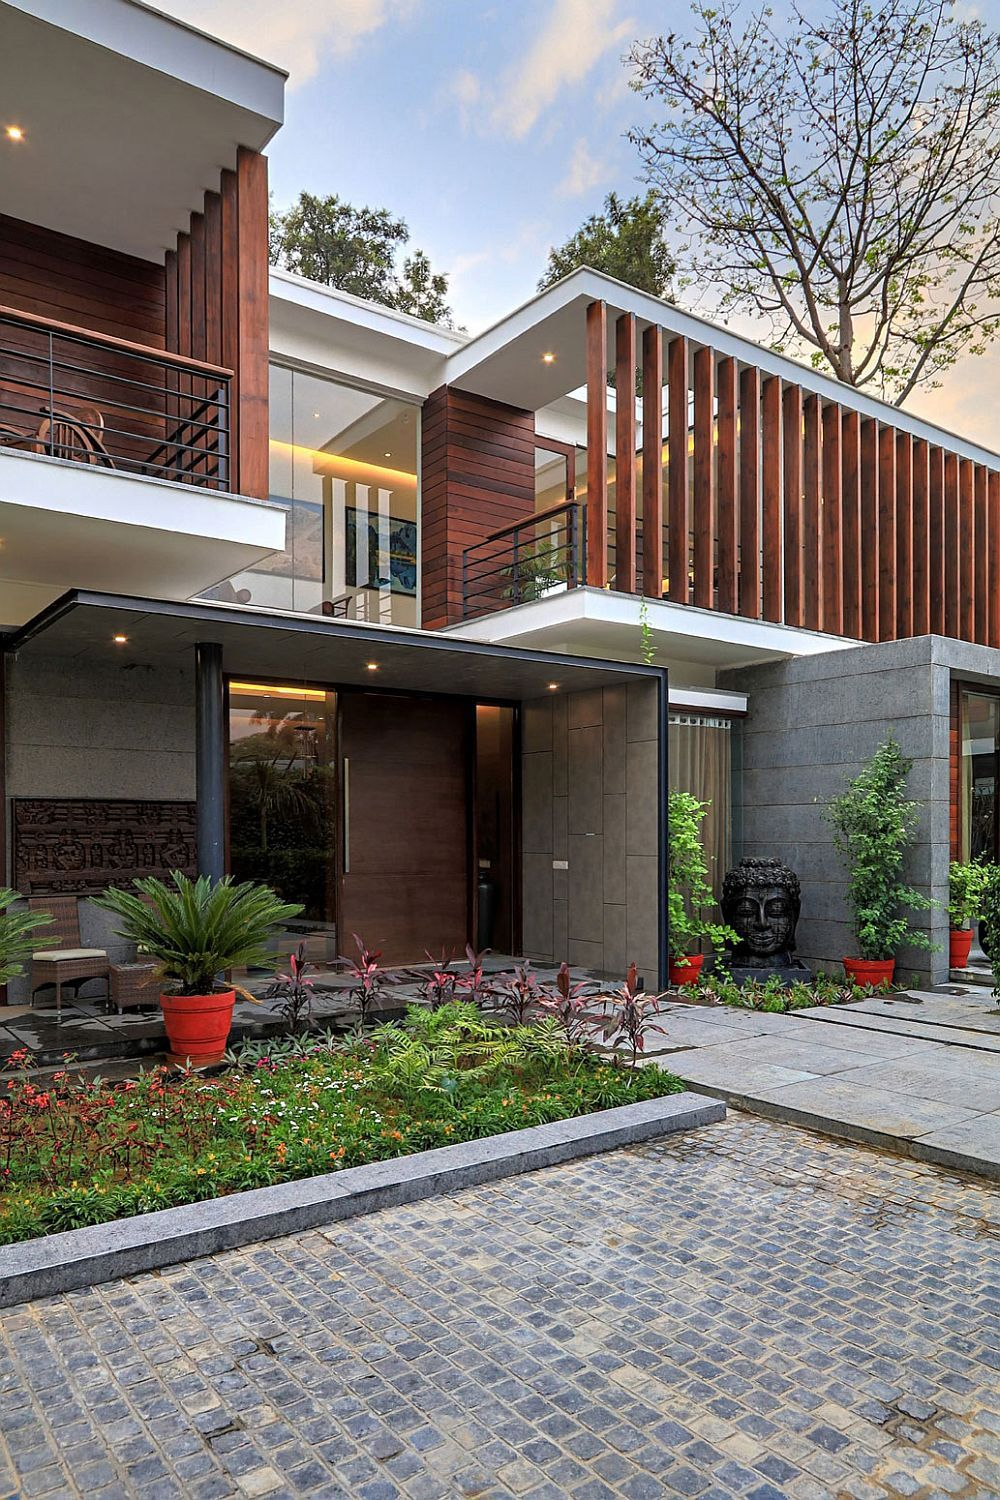 Wooden Slats, Glass Walls and Modern Grandeur: Gallery House in India #wallpaper